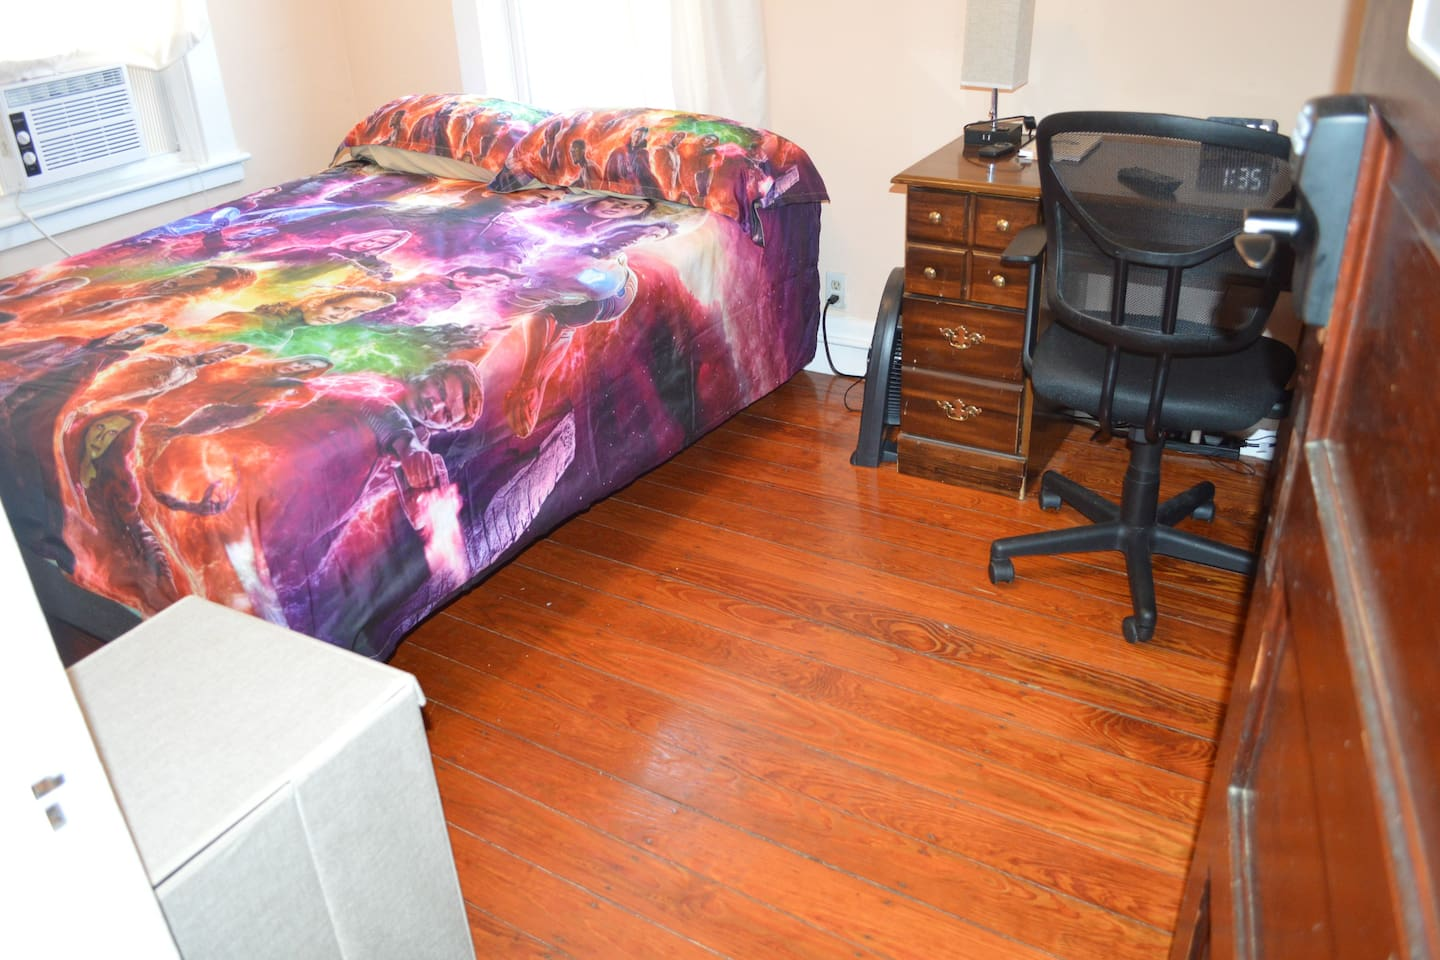 Room #2 has a brand new Nectar brand queen sized bed, and is very comfortable. Has high speed internet and comcast cable as well among the many of the new and improved features at The Modica Estates, while keeping all things in balance.